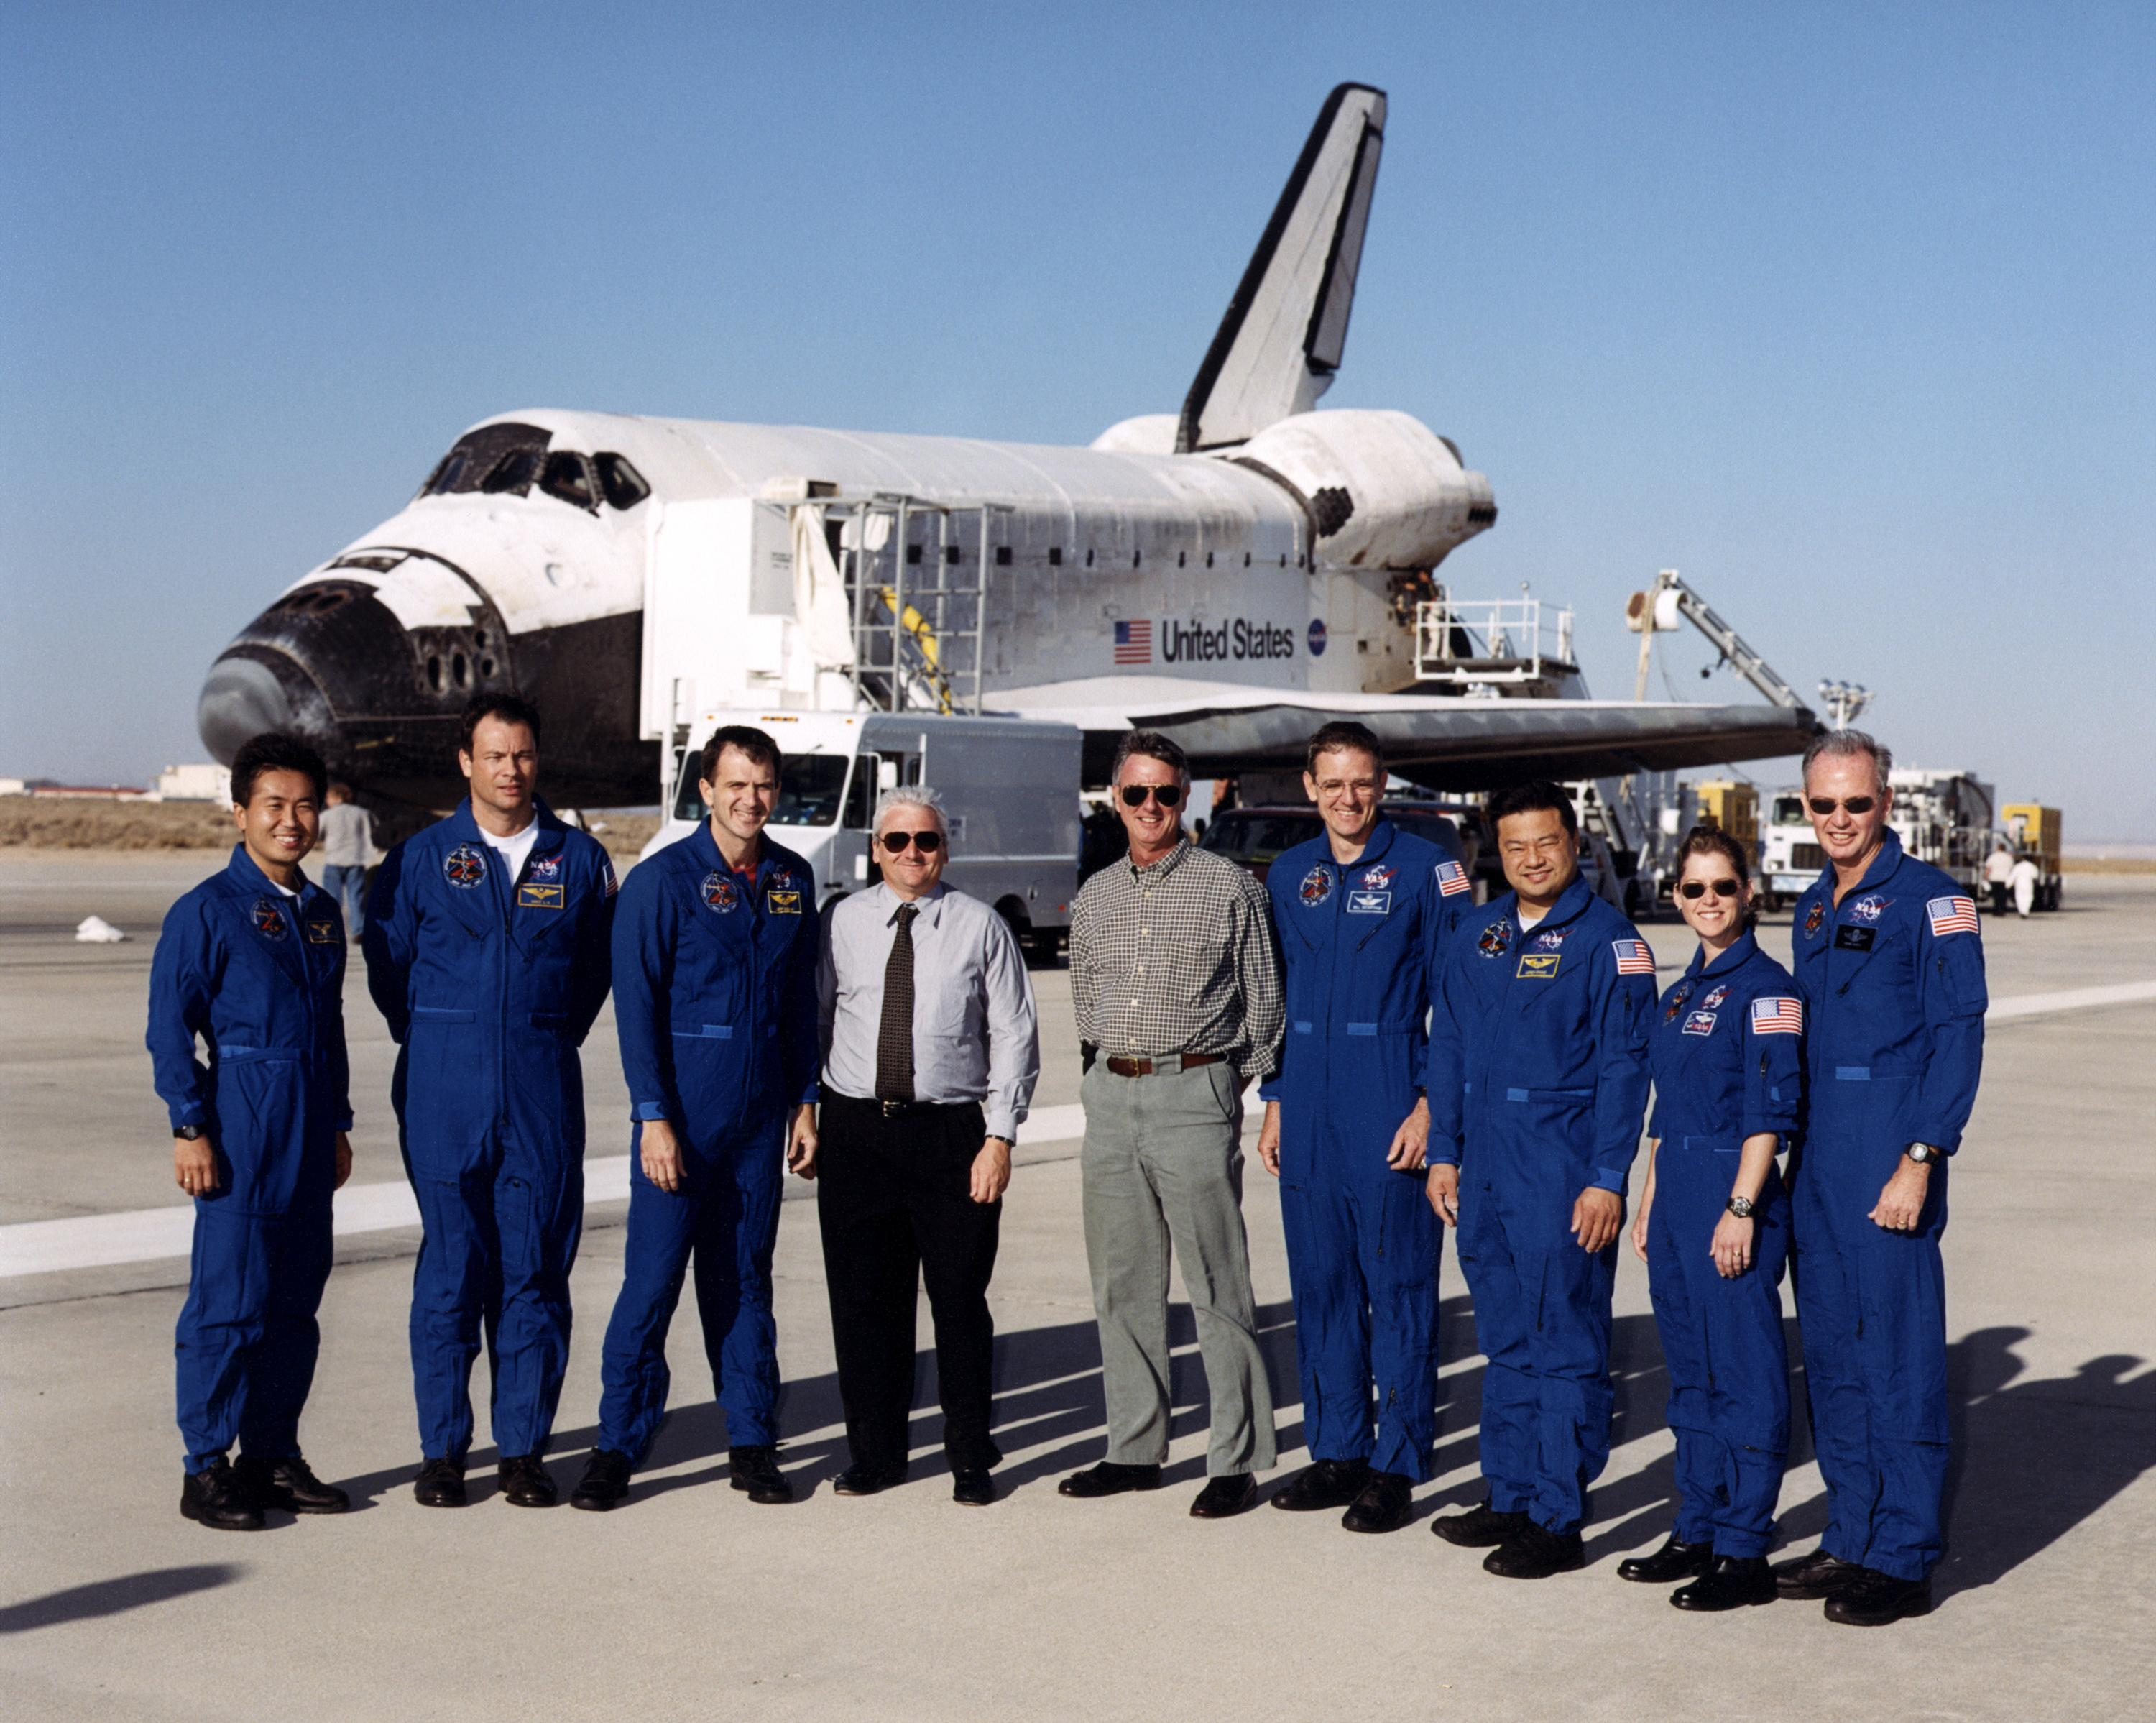 space shuttle discovery crew - photo #23